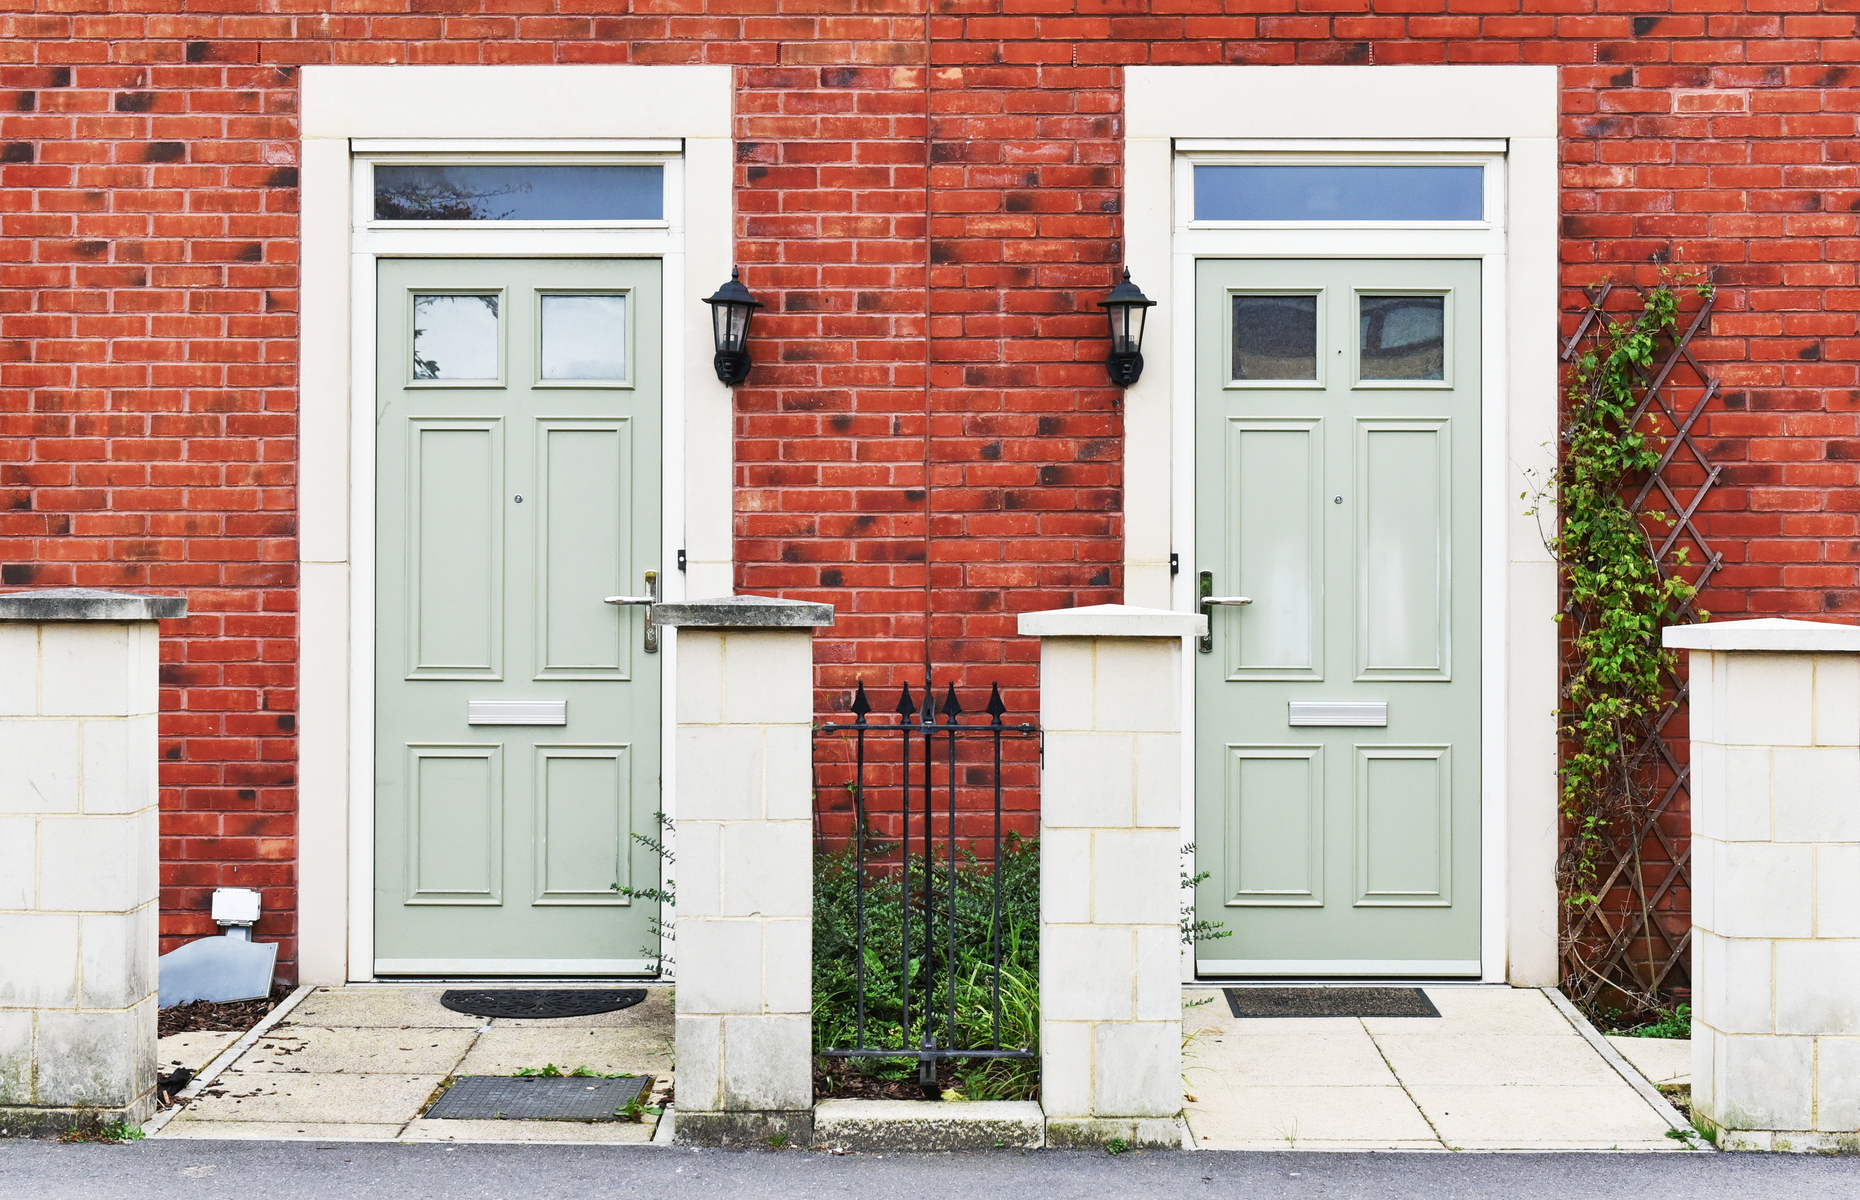 Be sure to keep neighbours informed when you undertake building works on your property. Image: 1000 words/Shutterstock